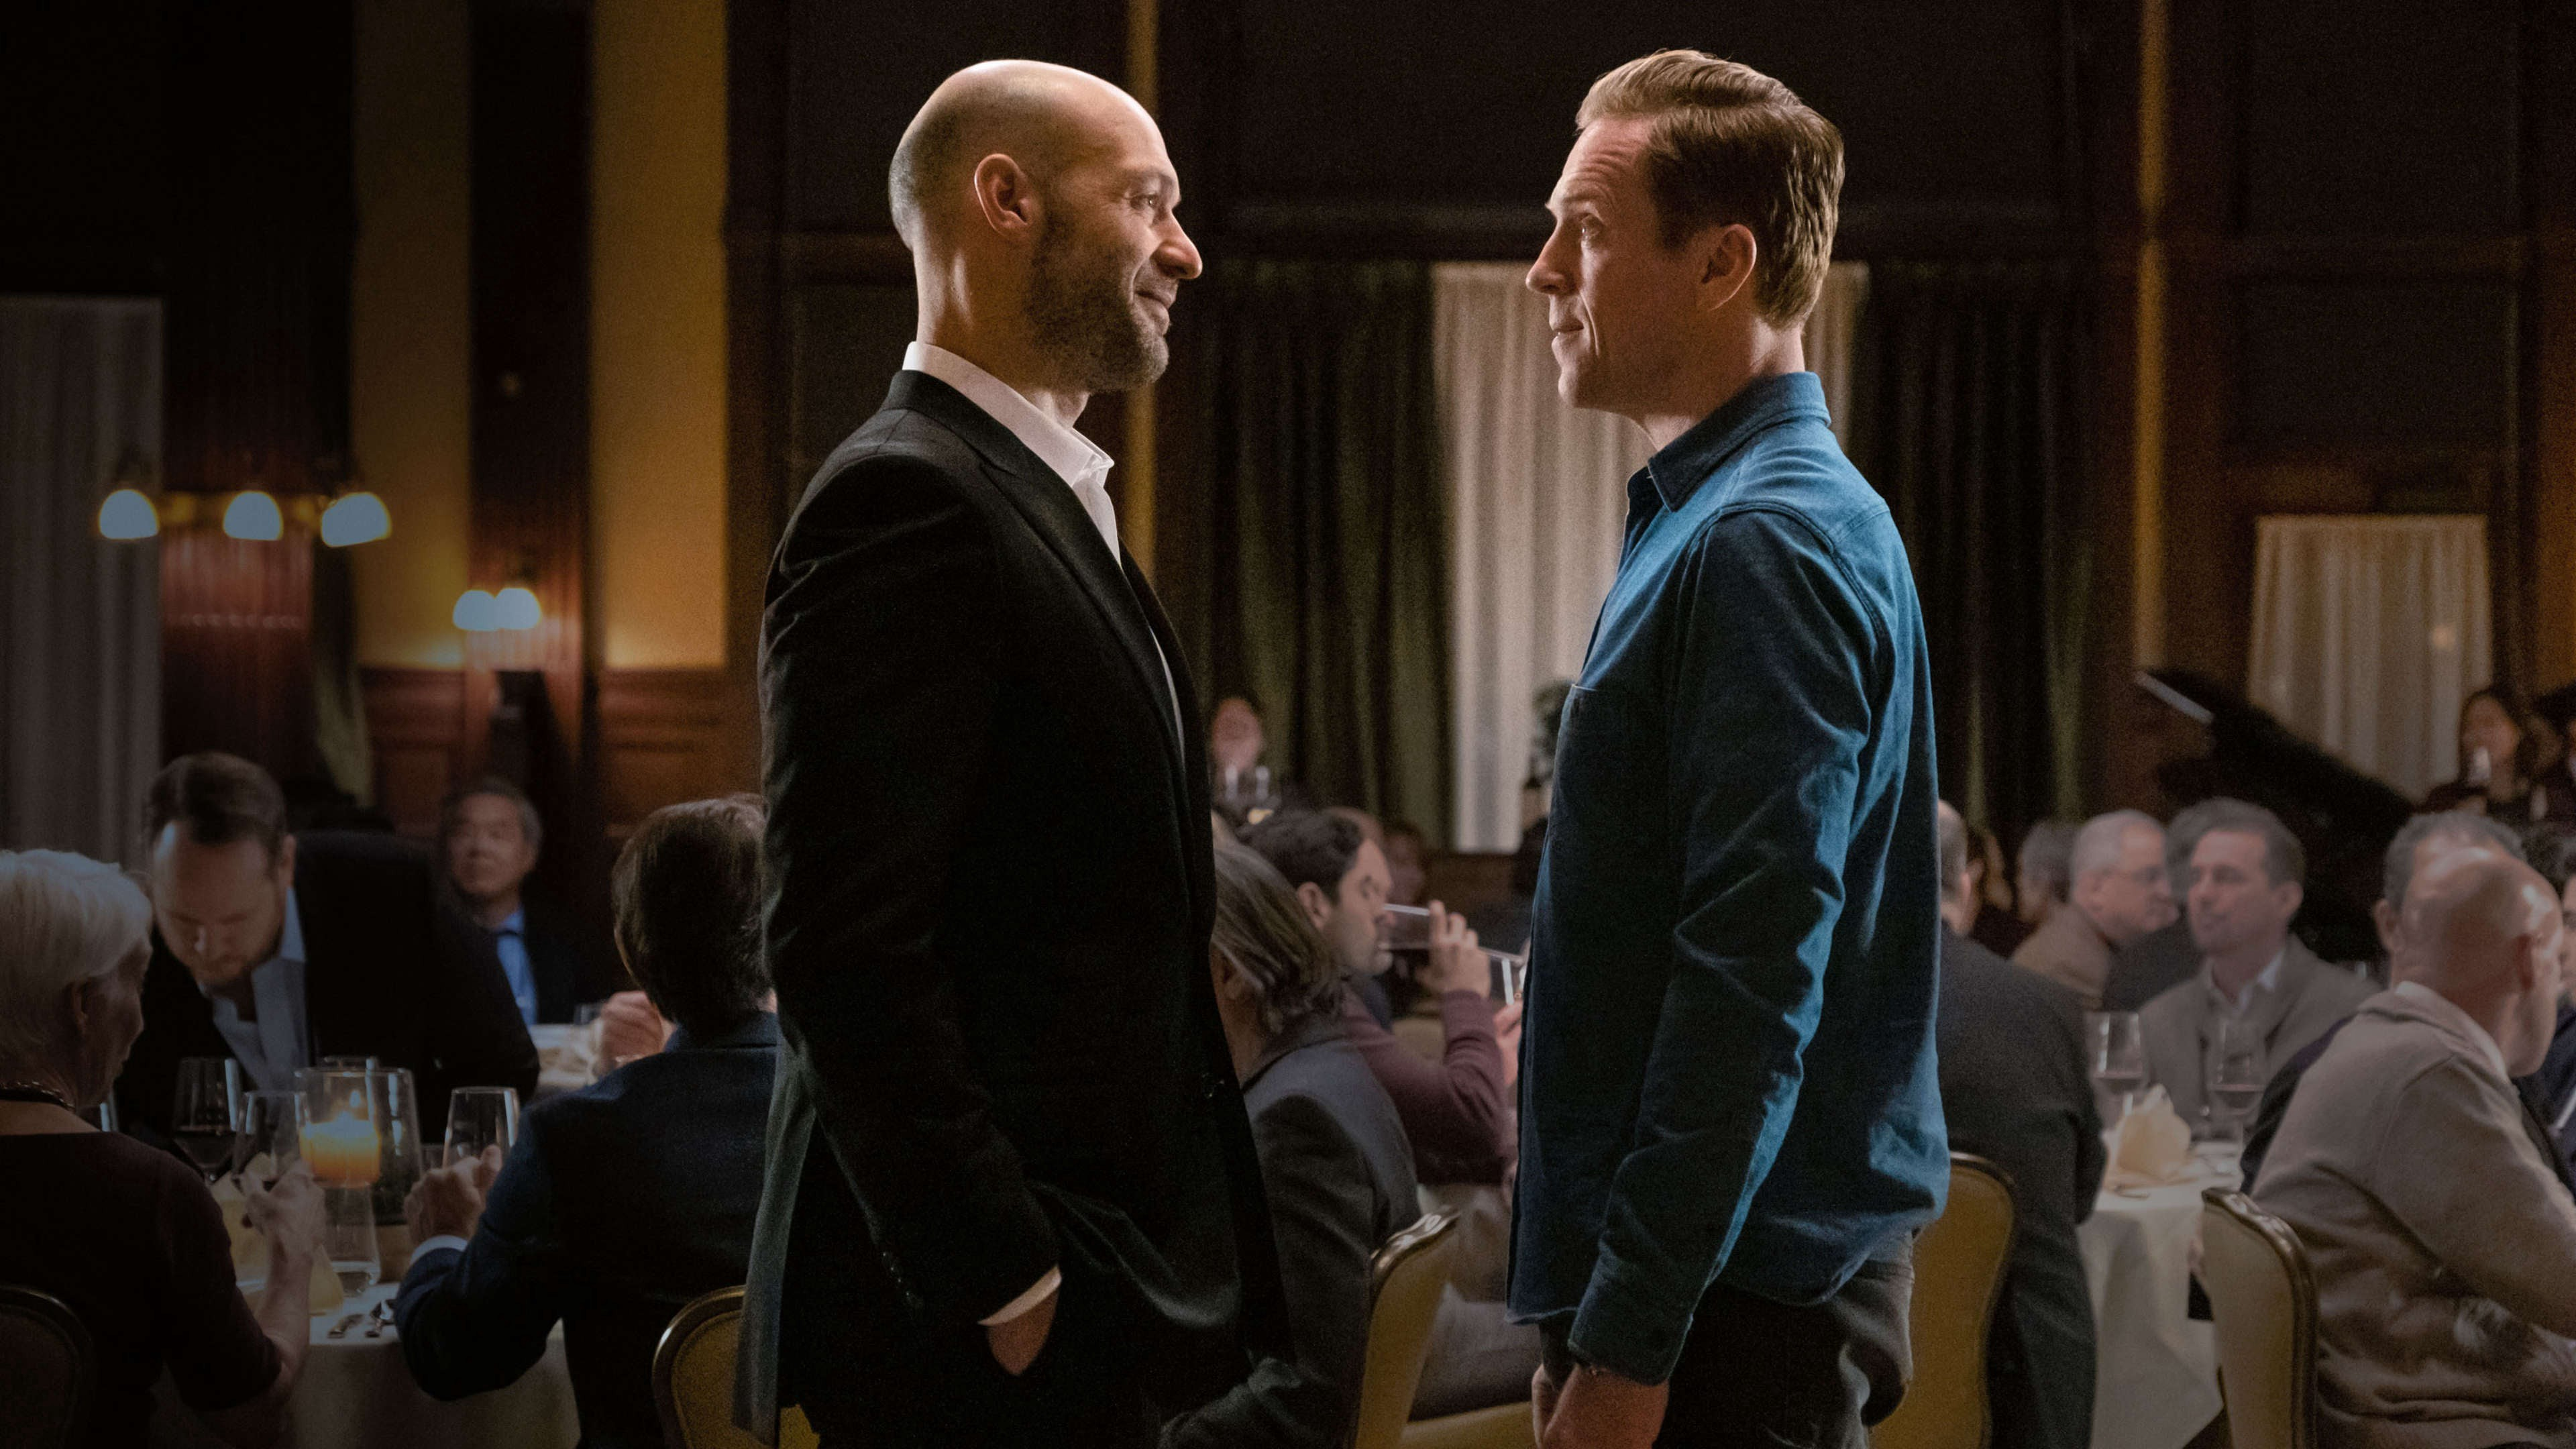 billions season 2 episode 1 watch online free